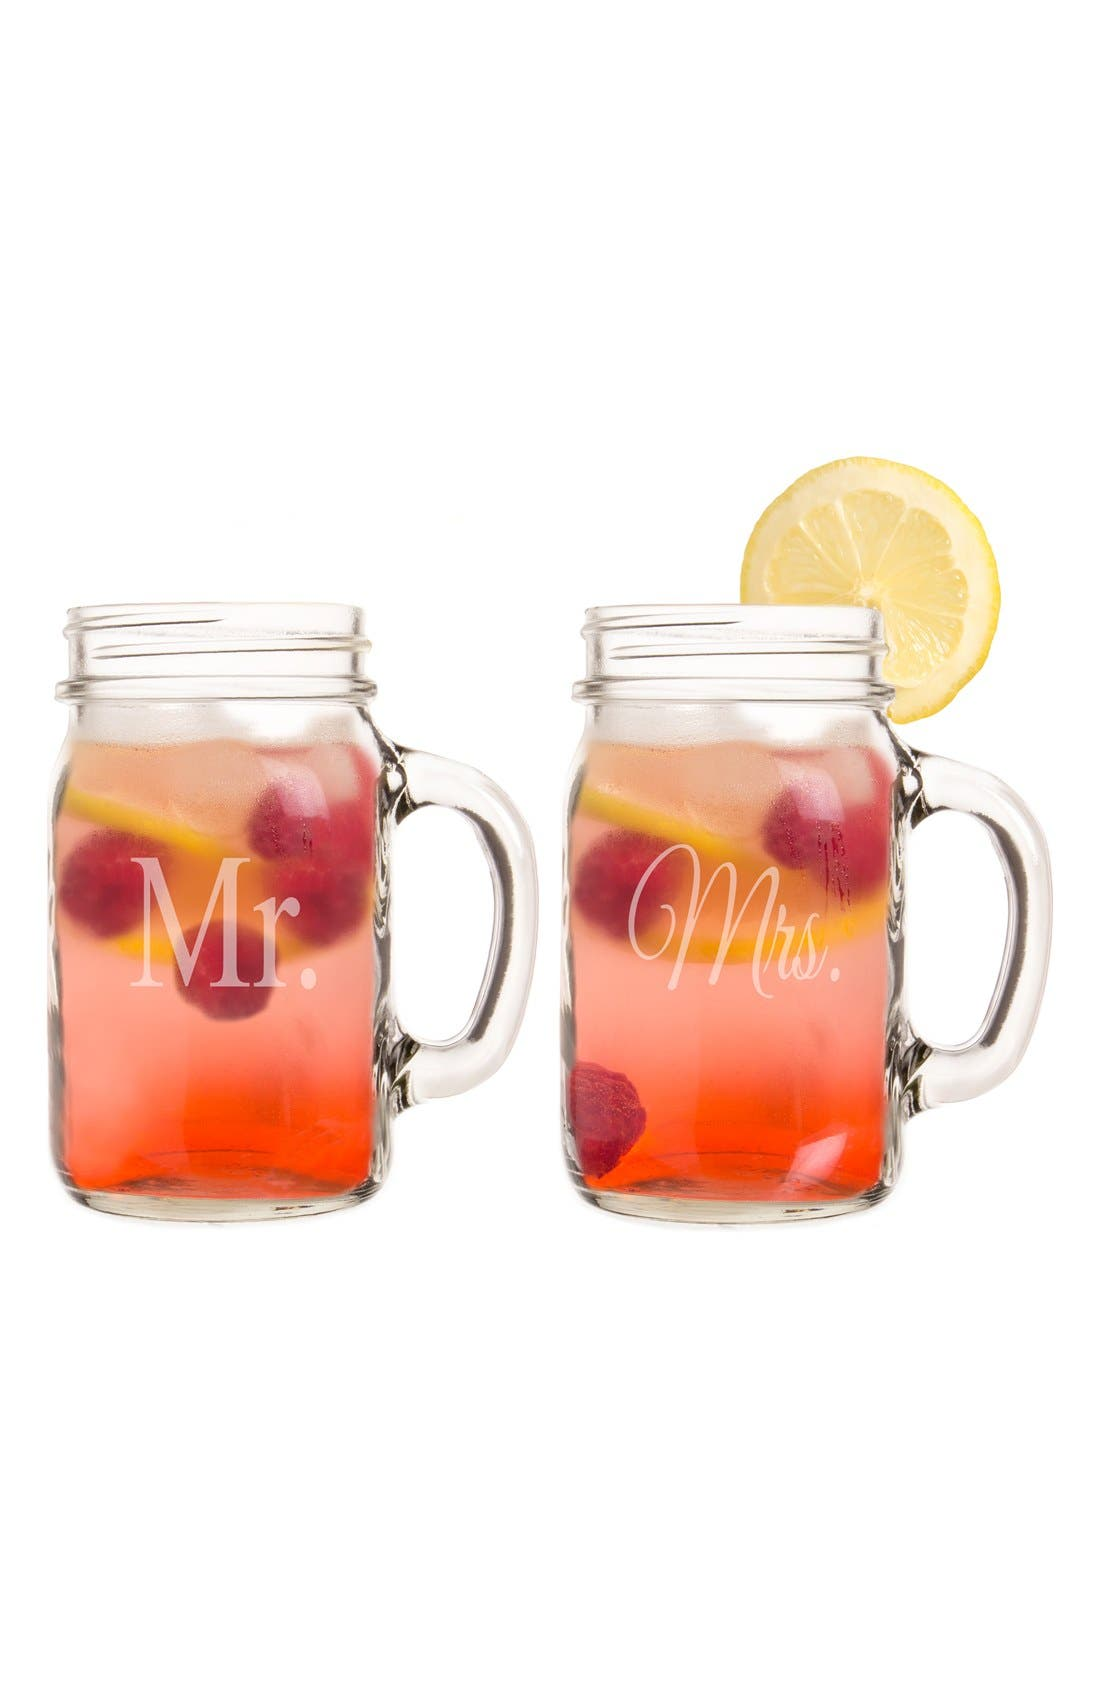 'For The Couple' Mason Jar Glasses with Handles,                             Alternate thumbnail 6, color,                             100